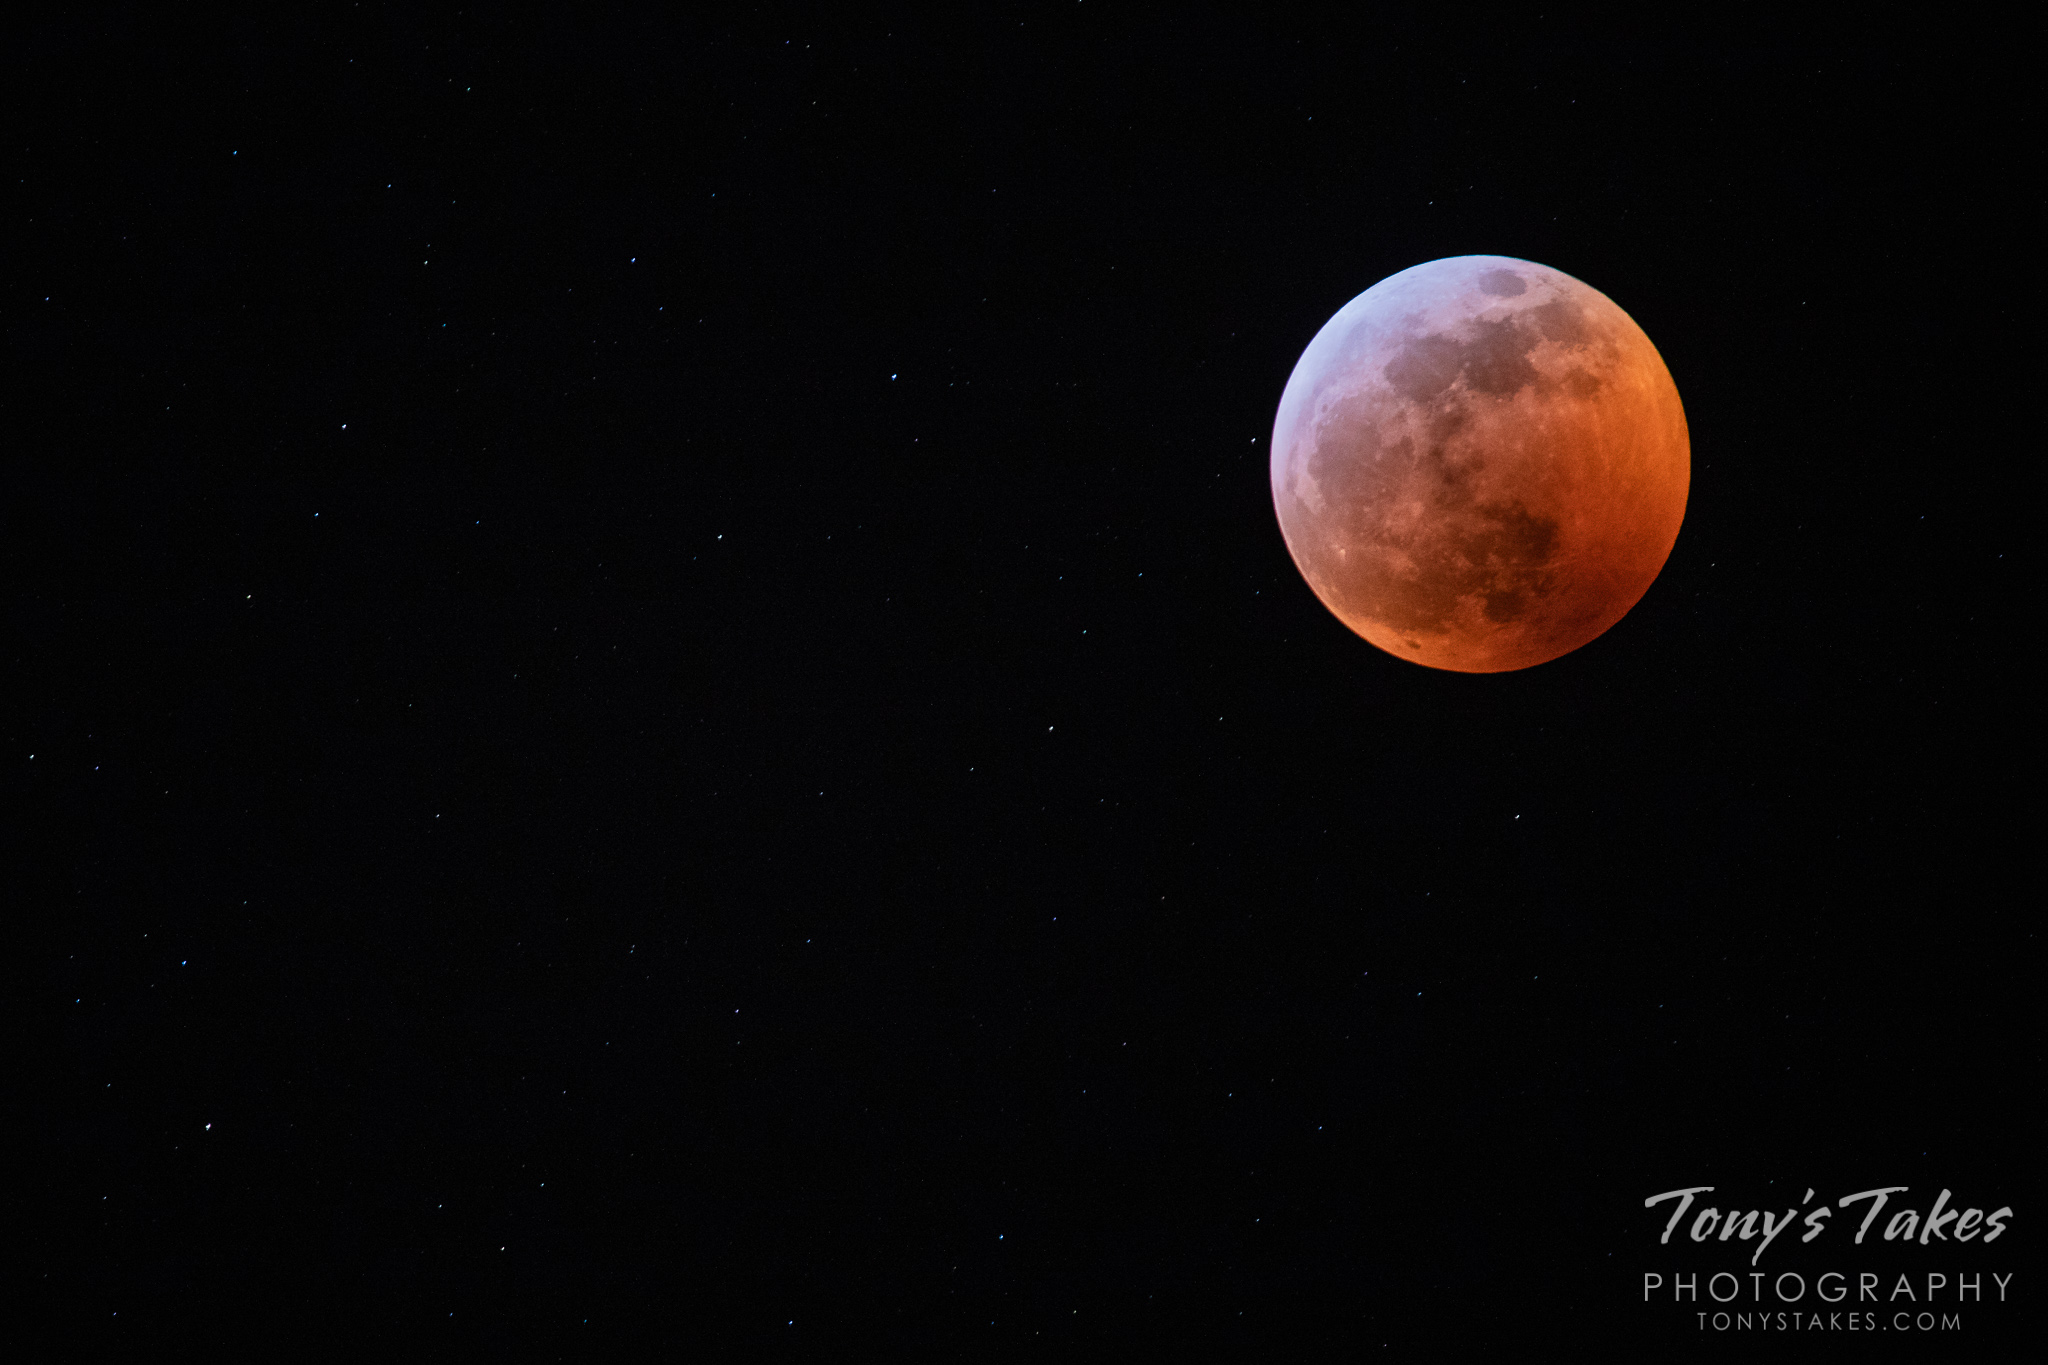 The total lunar eclipse turns the moon red while allowing the stars around it to shine. (© Tony's Takes)